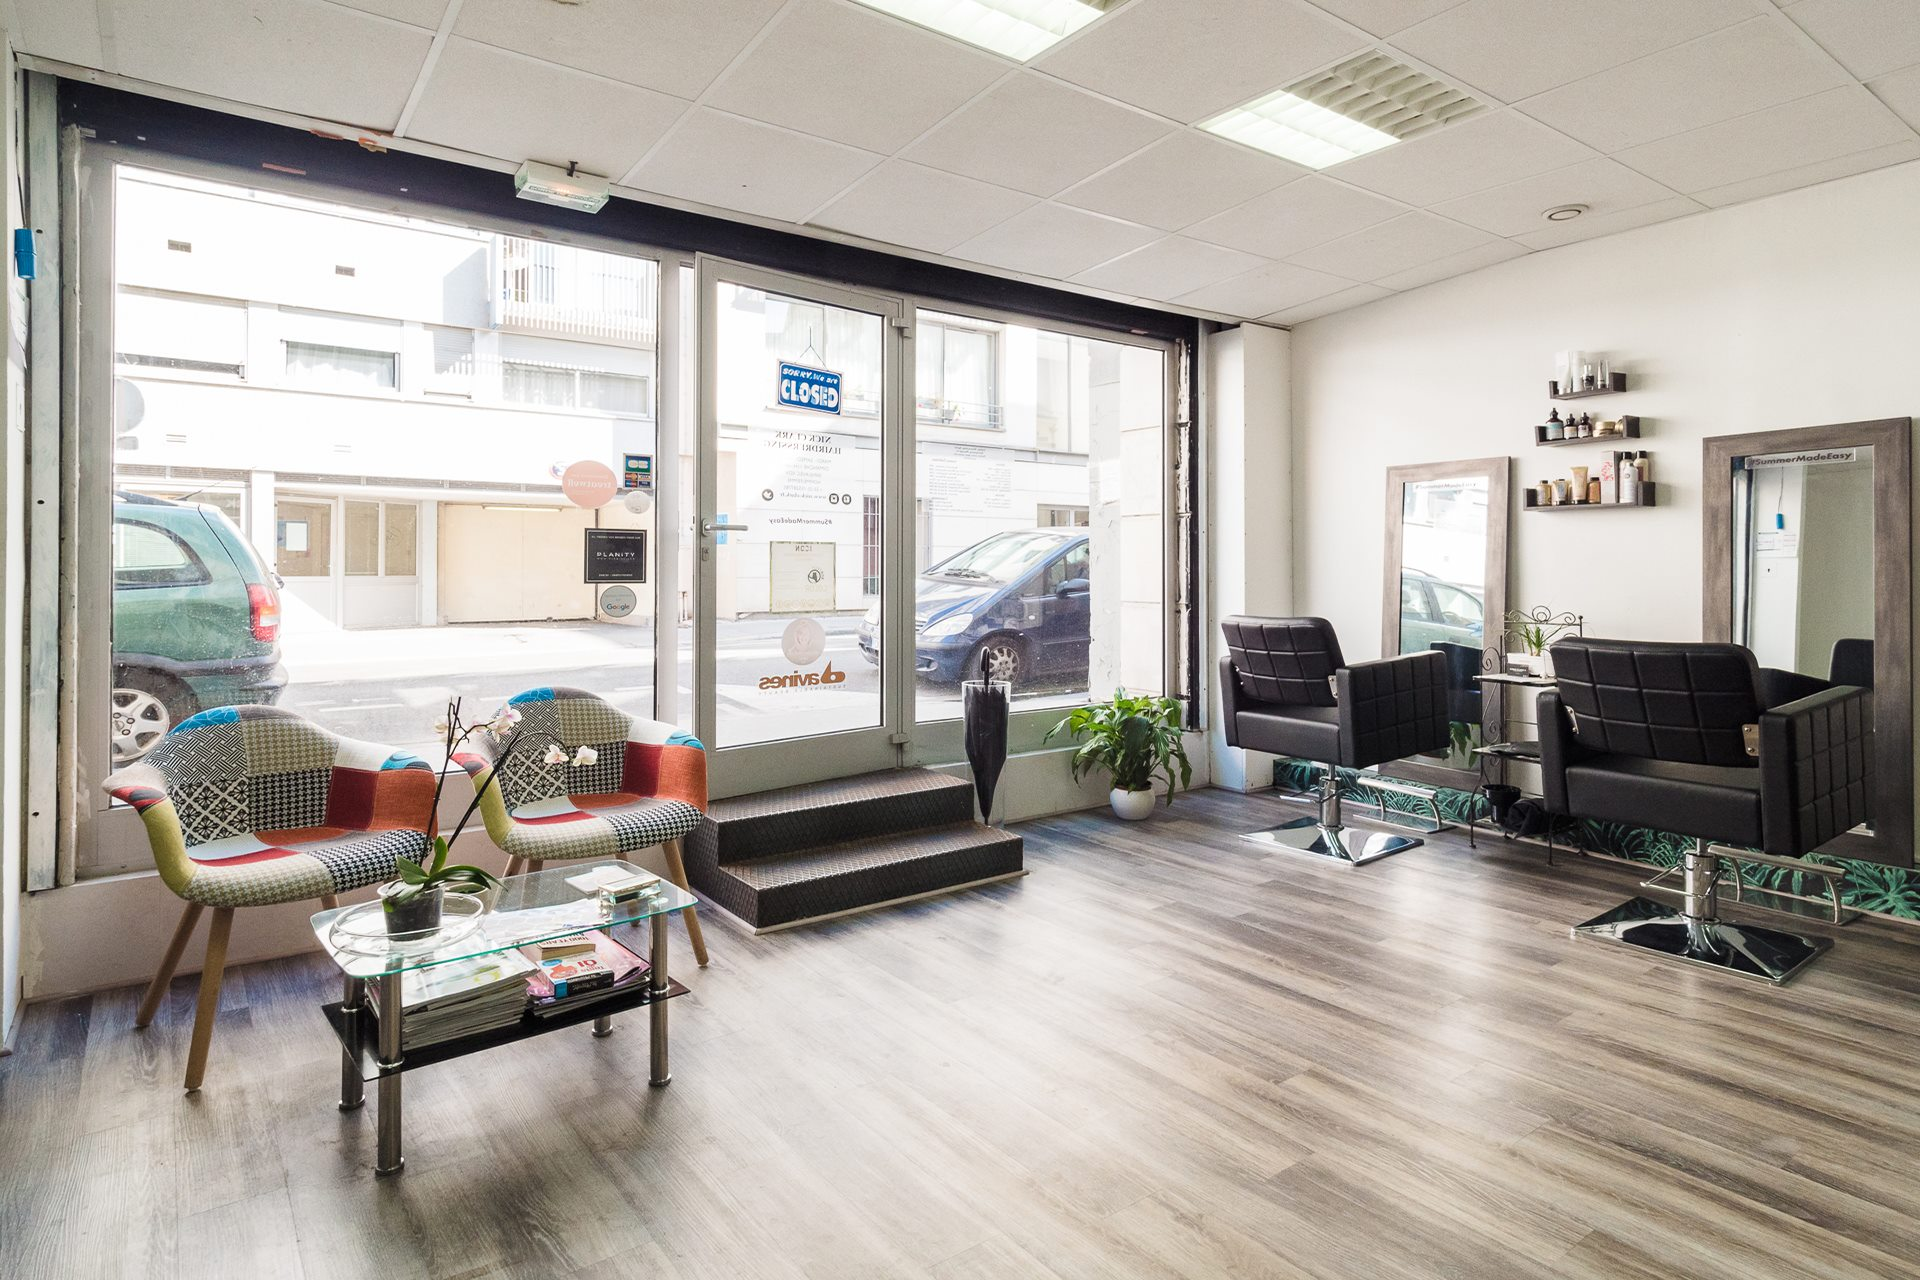 15% off first haircut at Nick Clark Hairdressing